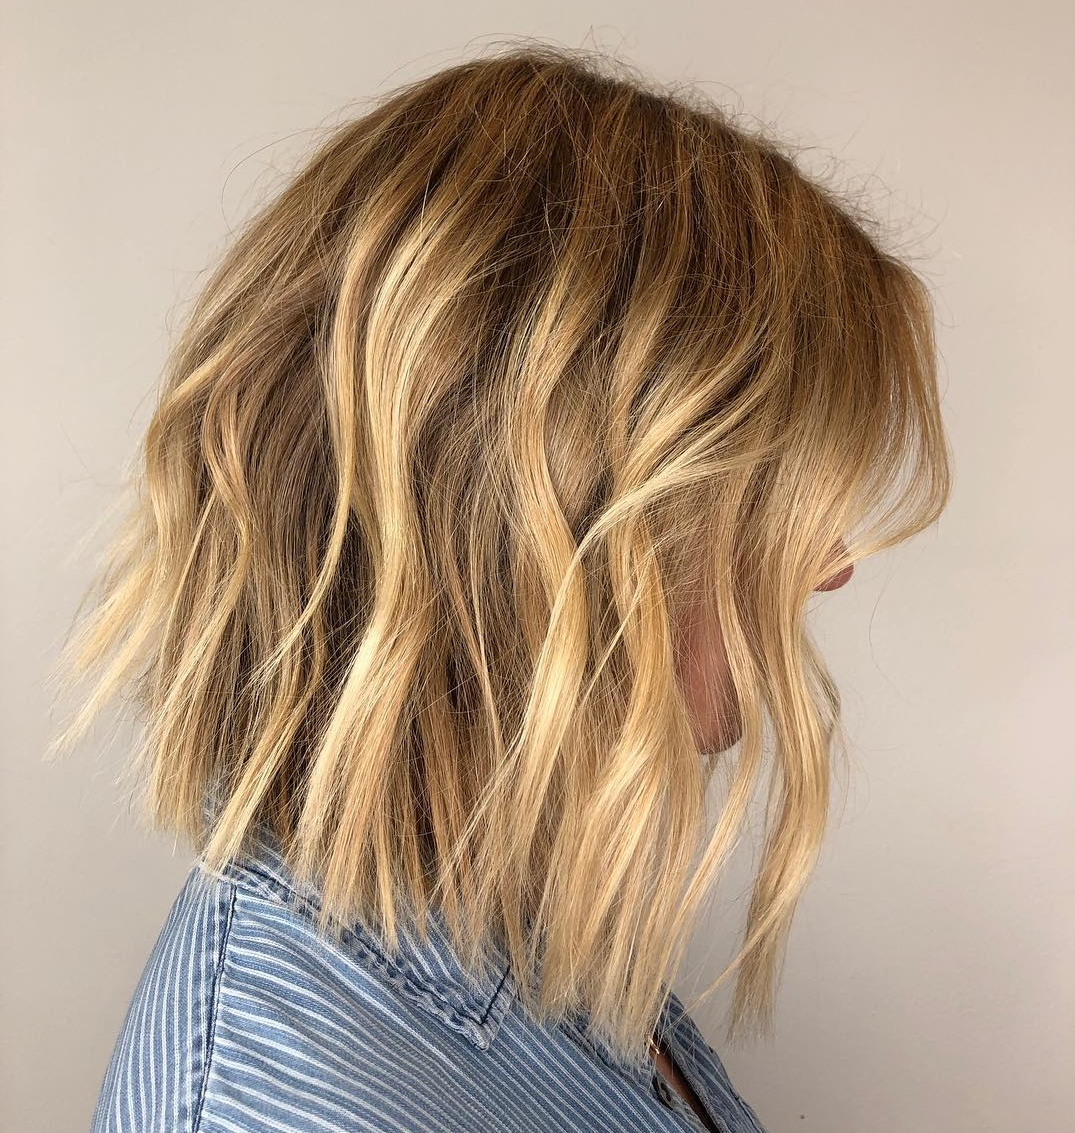 How To Pull Off Medium Length Haircuts And Hairstyles In 2019 With Regard To Well Liked Mid Back Brown U Shaped Haircuts With Swoopy Layers (View 17 of 20)